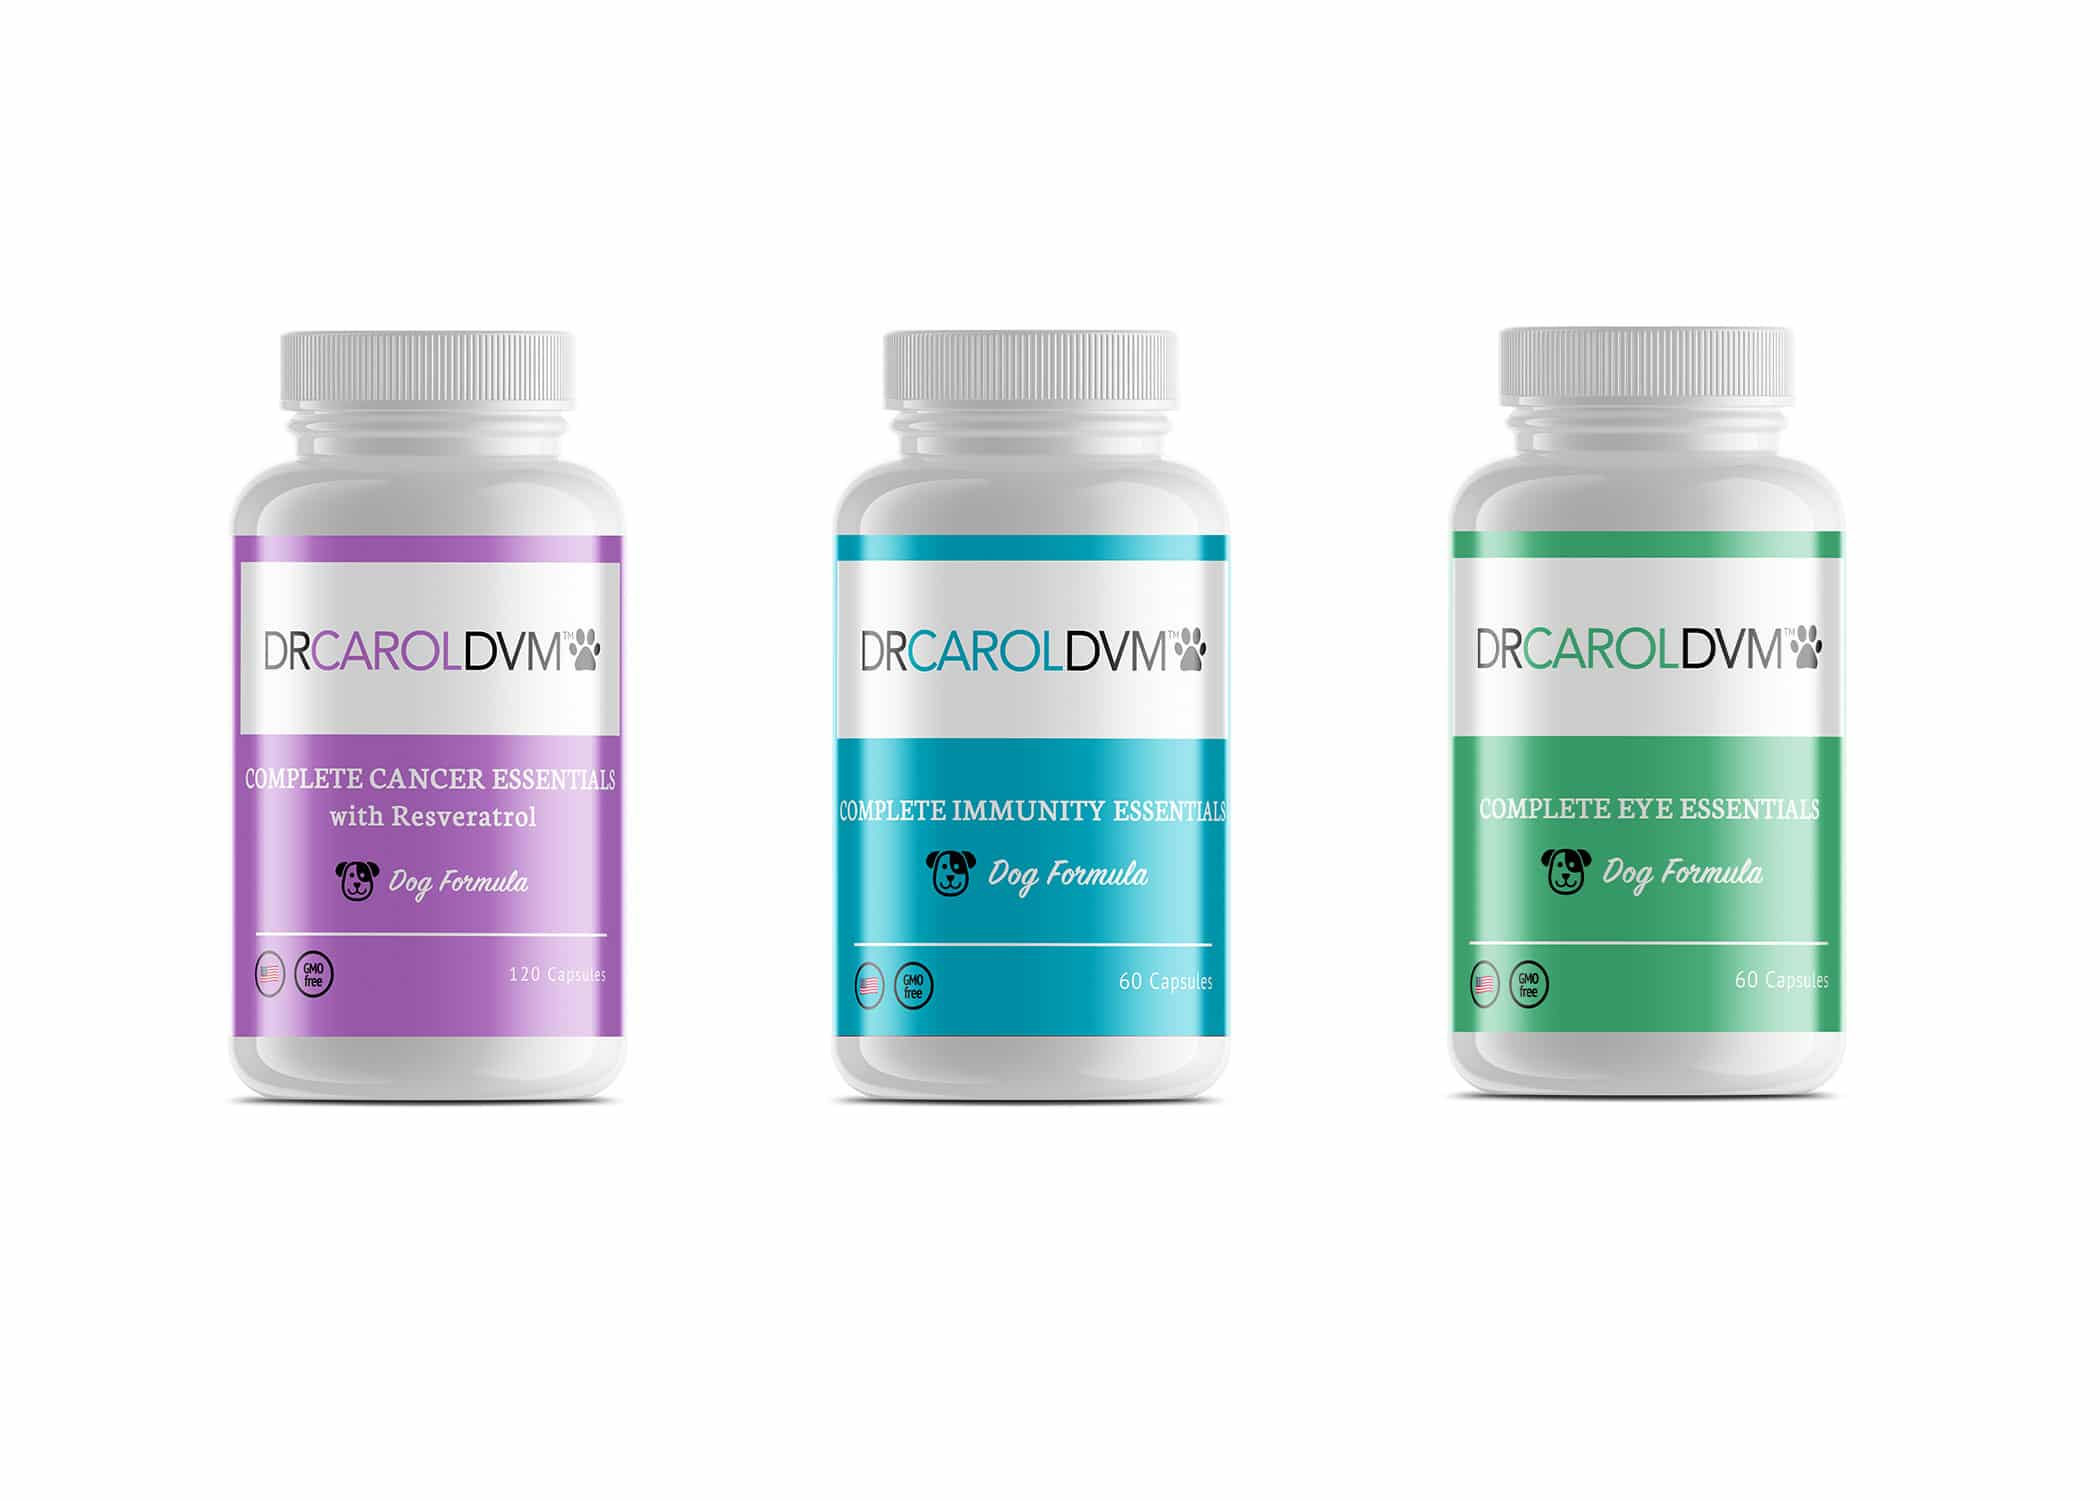 Dr. Carol DVM pet supplement bottle label design in white, blue, purple, and green with friendly dog and cat icons.